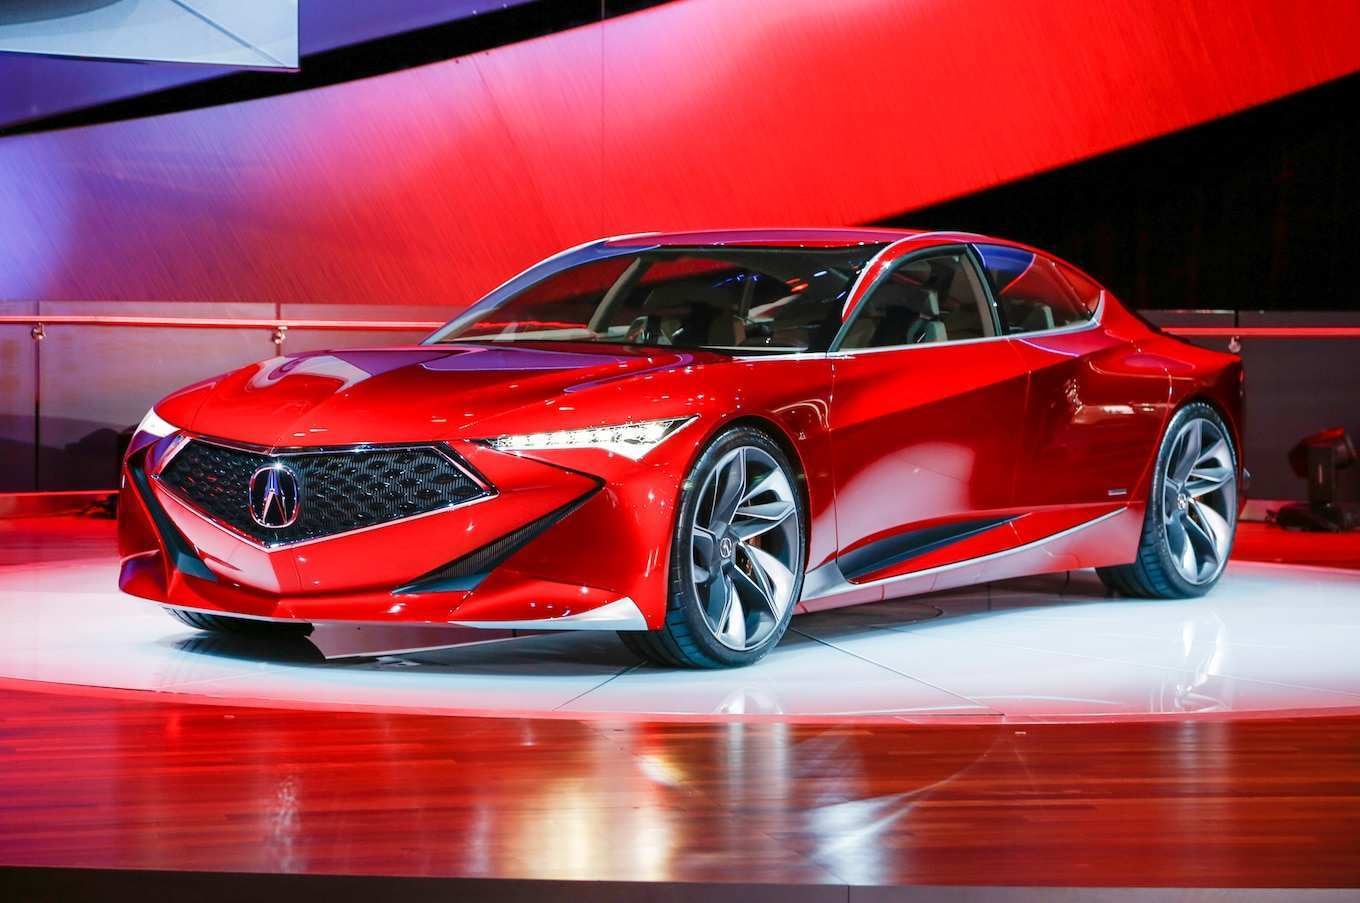 51 The Best Acura Precision Concept 2020 Pictures